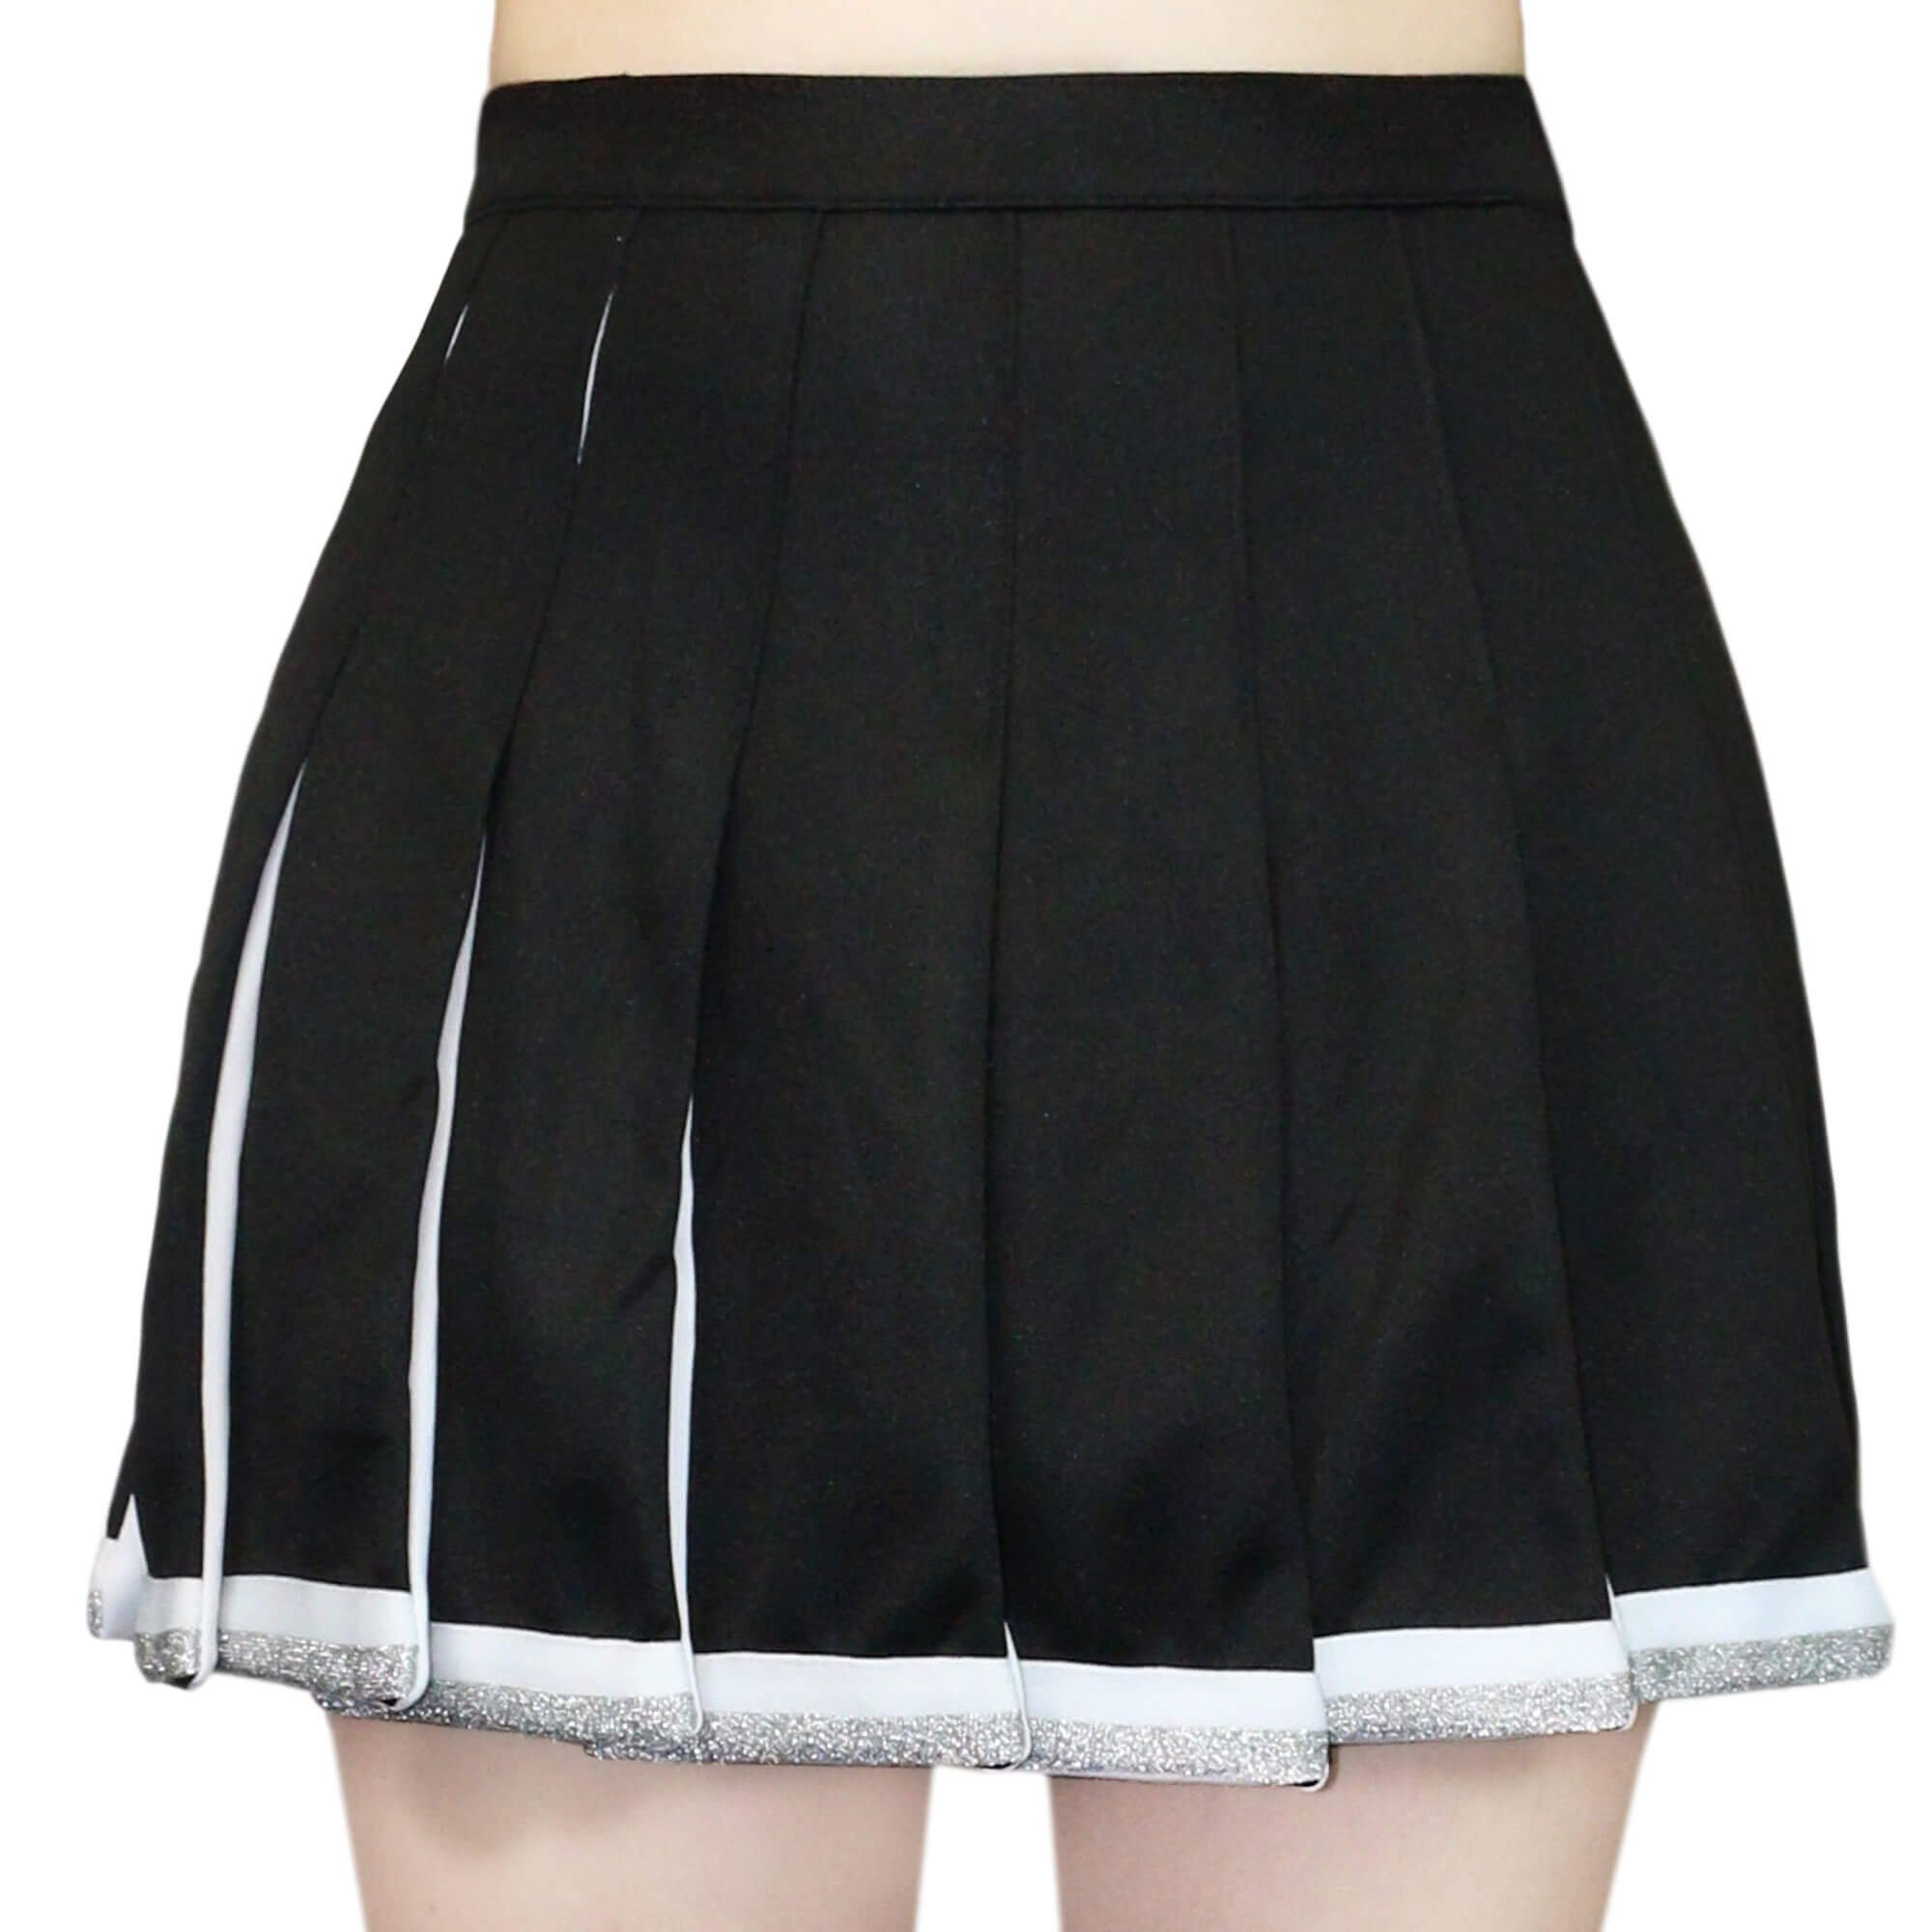 Danzcue Child Cheerleading Pleated Skirt